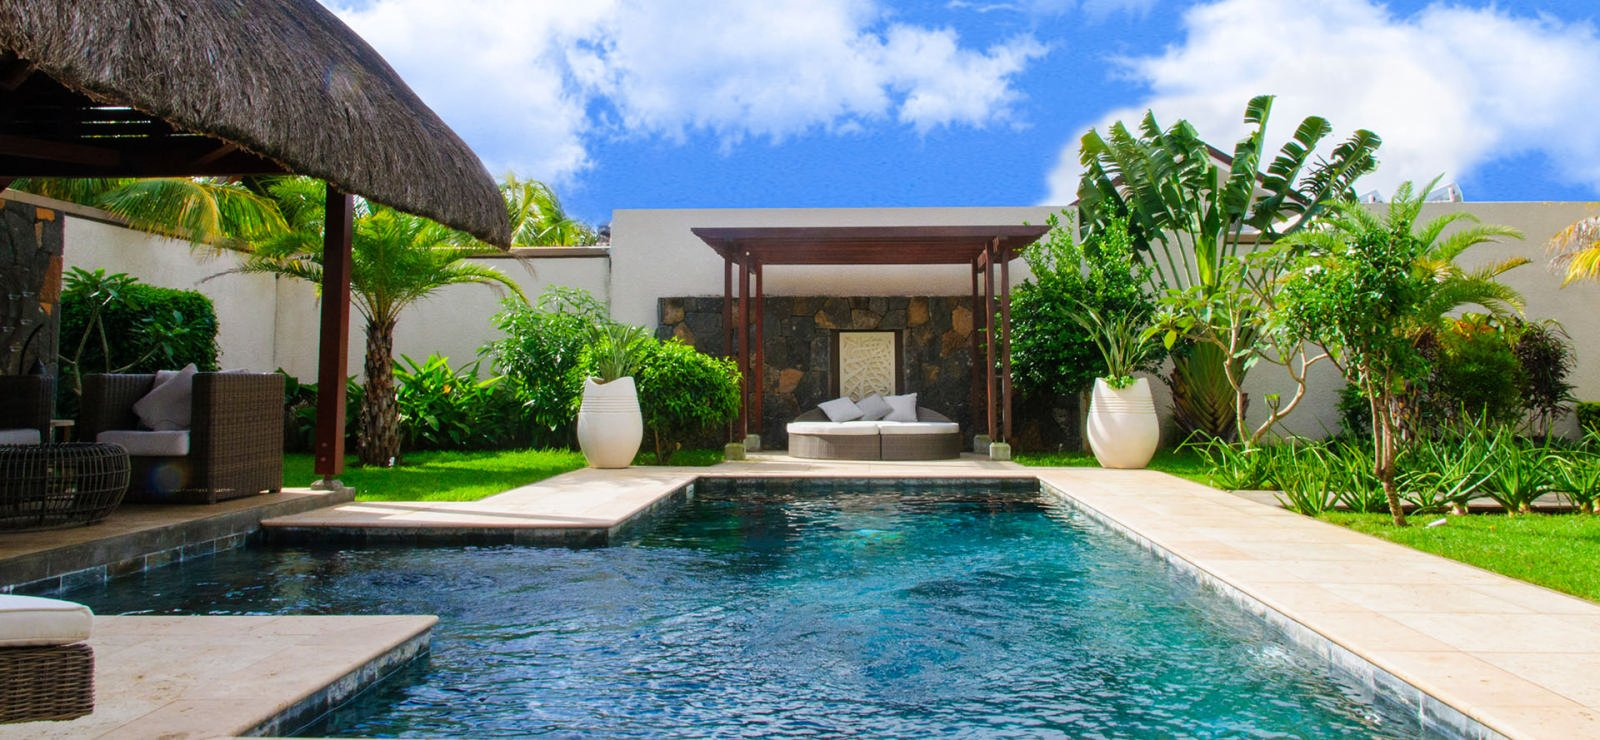 RES Villa accessible to foreigners - Grand Bay